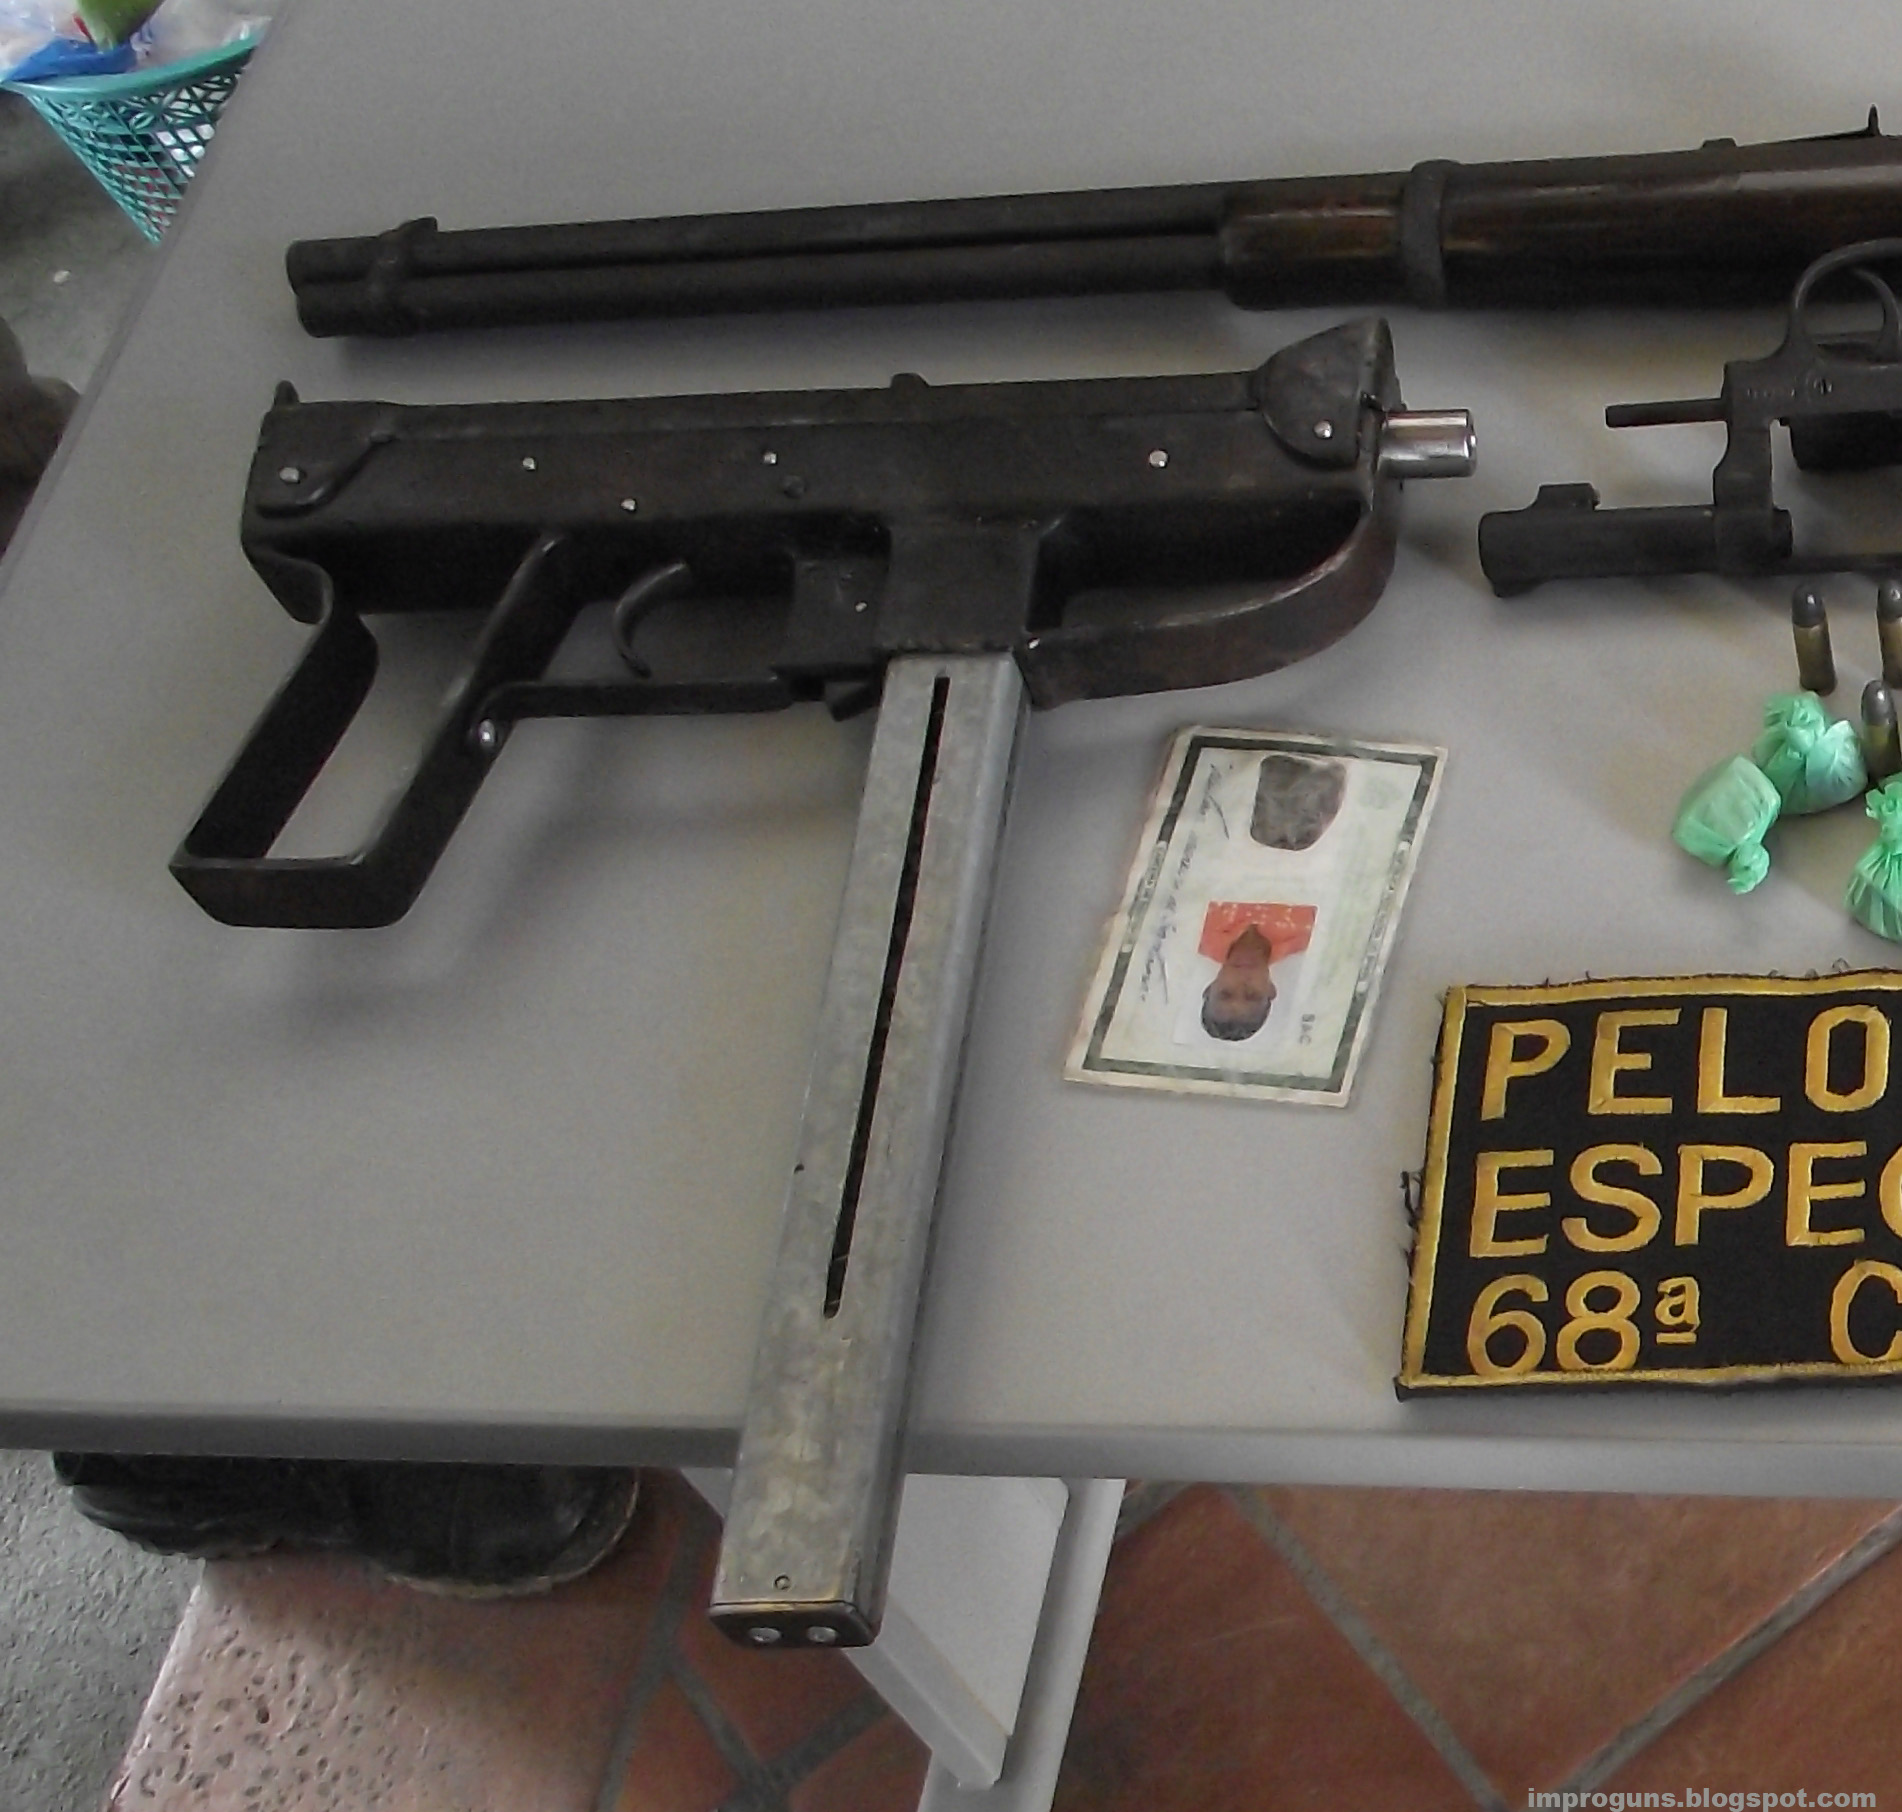 Homemade Submachine Guns Part 4 Brazil 2 Impro Guns